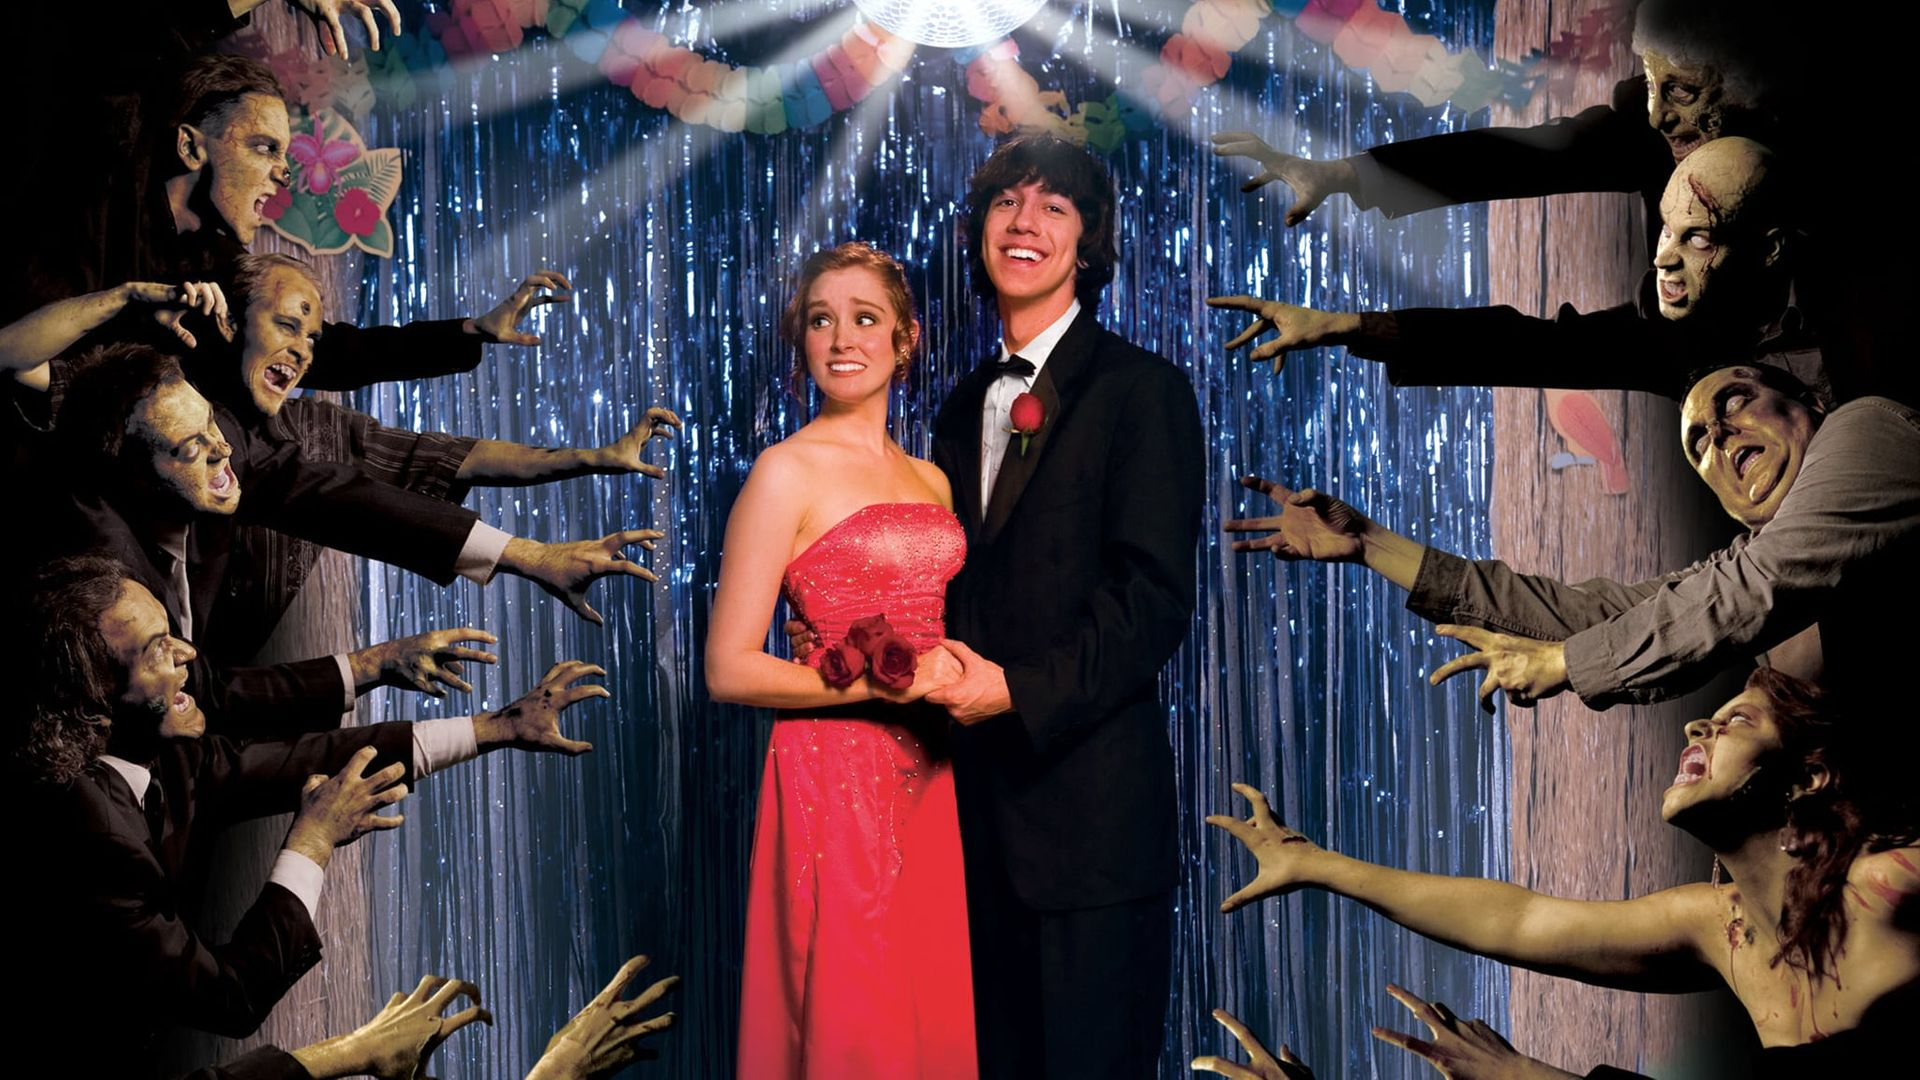 Dead on Arrival: 10 Kids Who Never Made it To Prom Alive